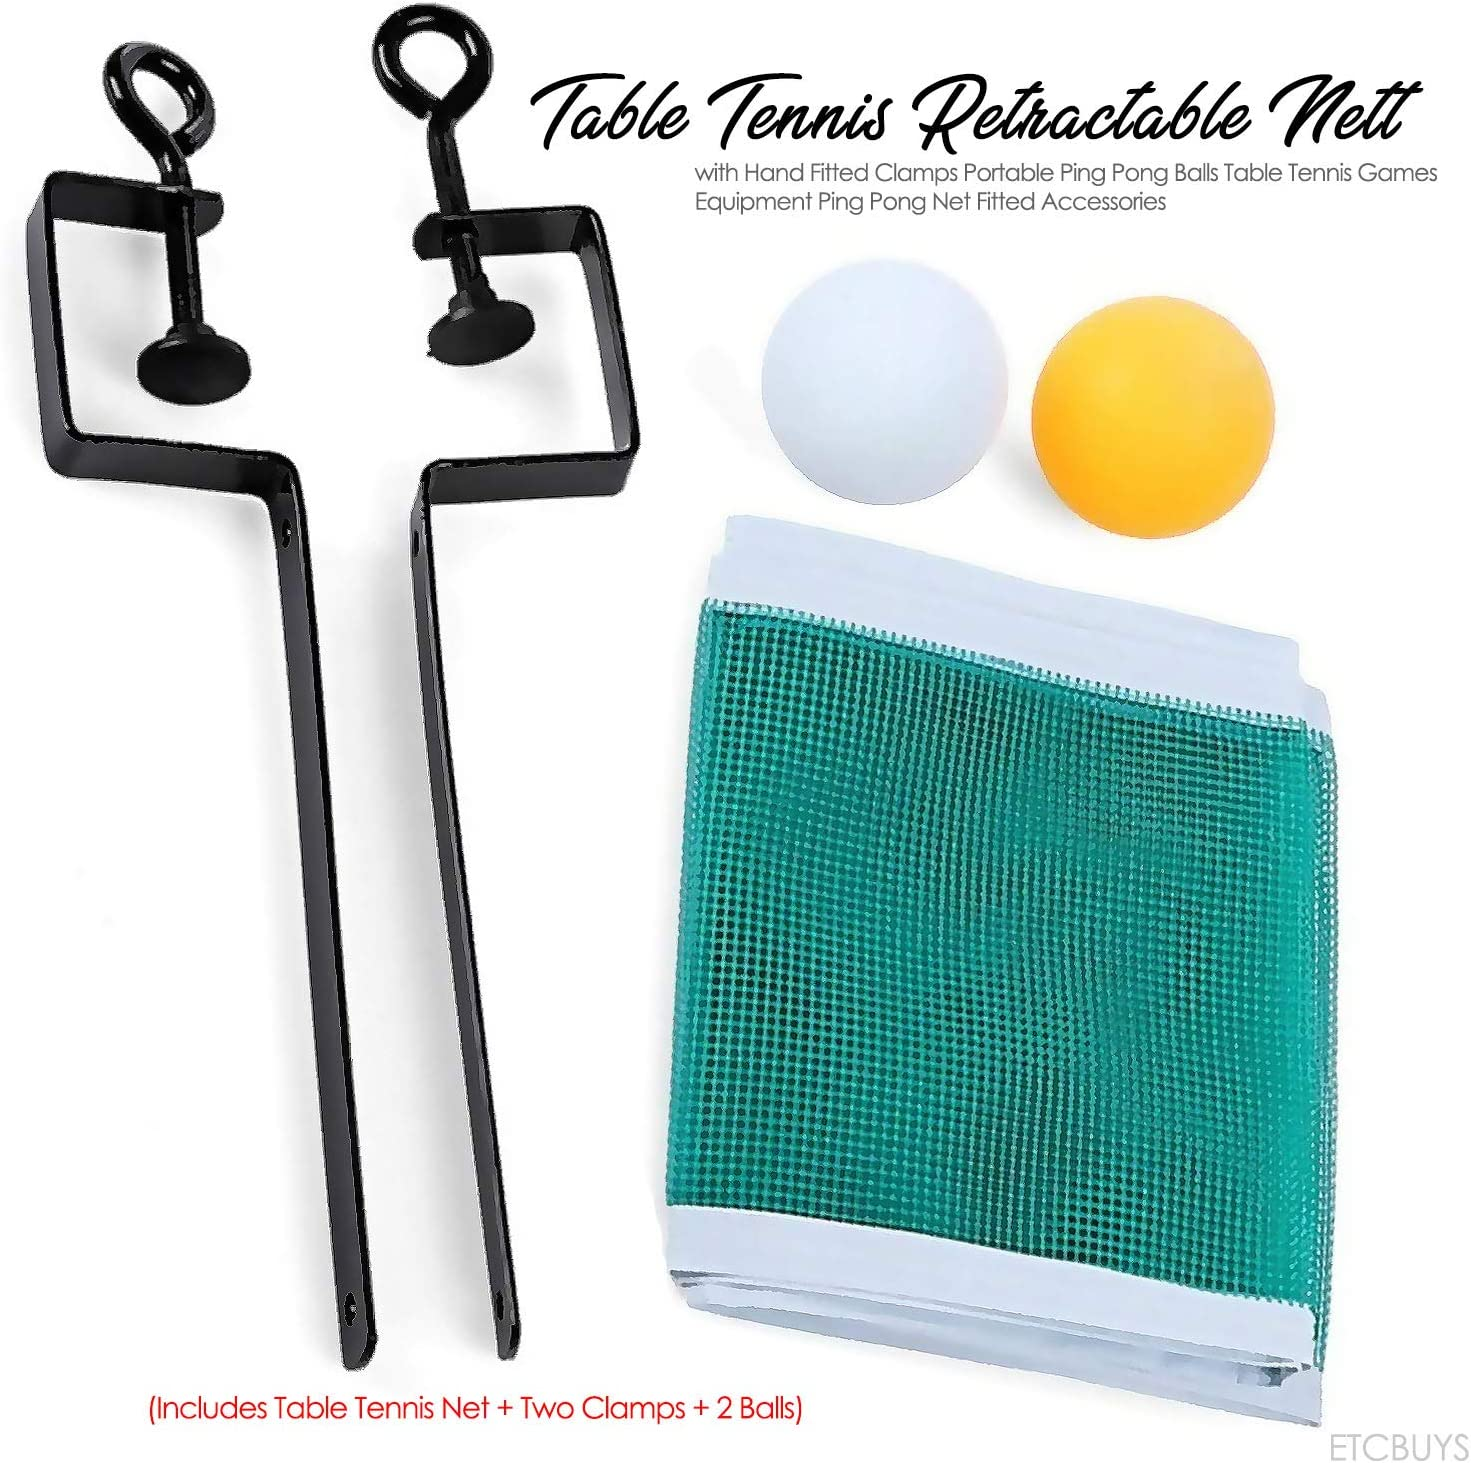 Includes Table Tennis Net + Two Clamps + 2 Balls ETCBUYS Table Tennis Retractable Net with Hand Fitted Clamps Portable Ping Pong Balls Table Tennis Games Equipment Ping Pong Net Fitted Accessories